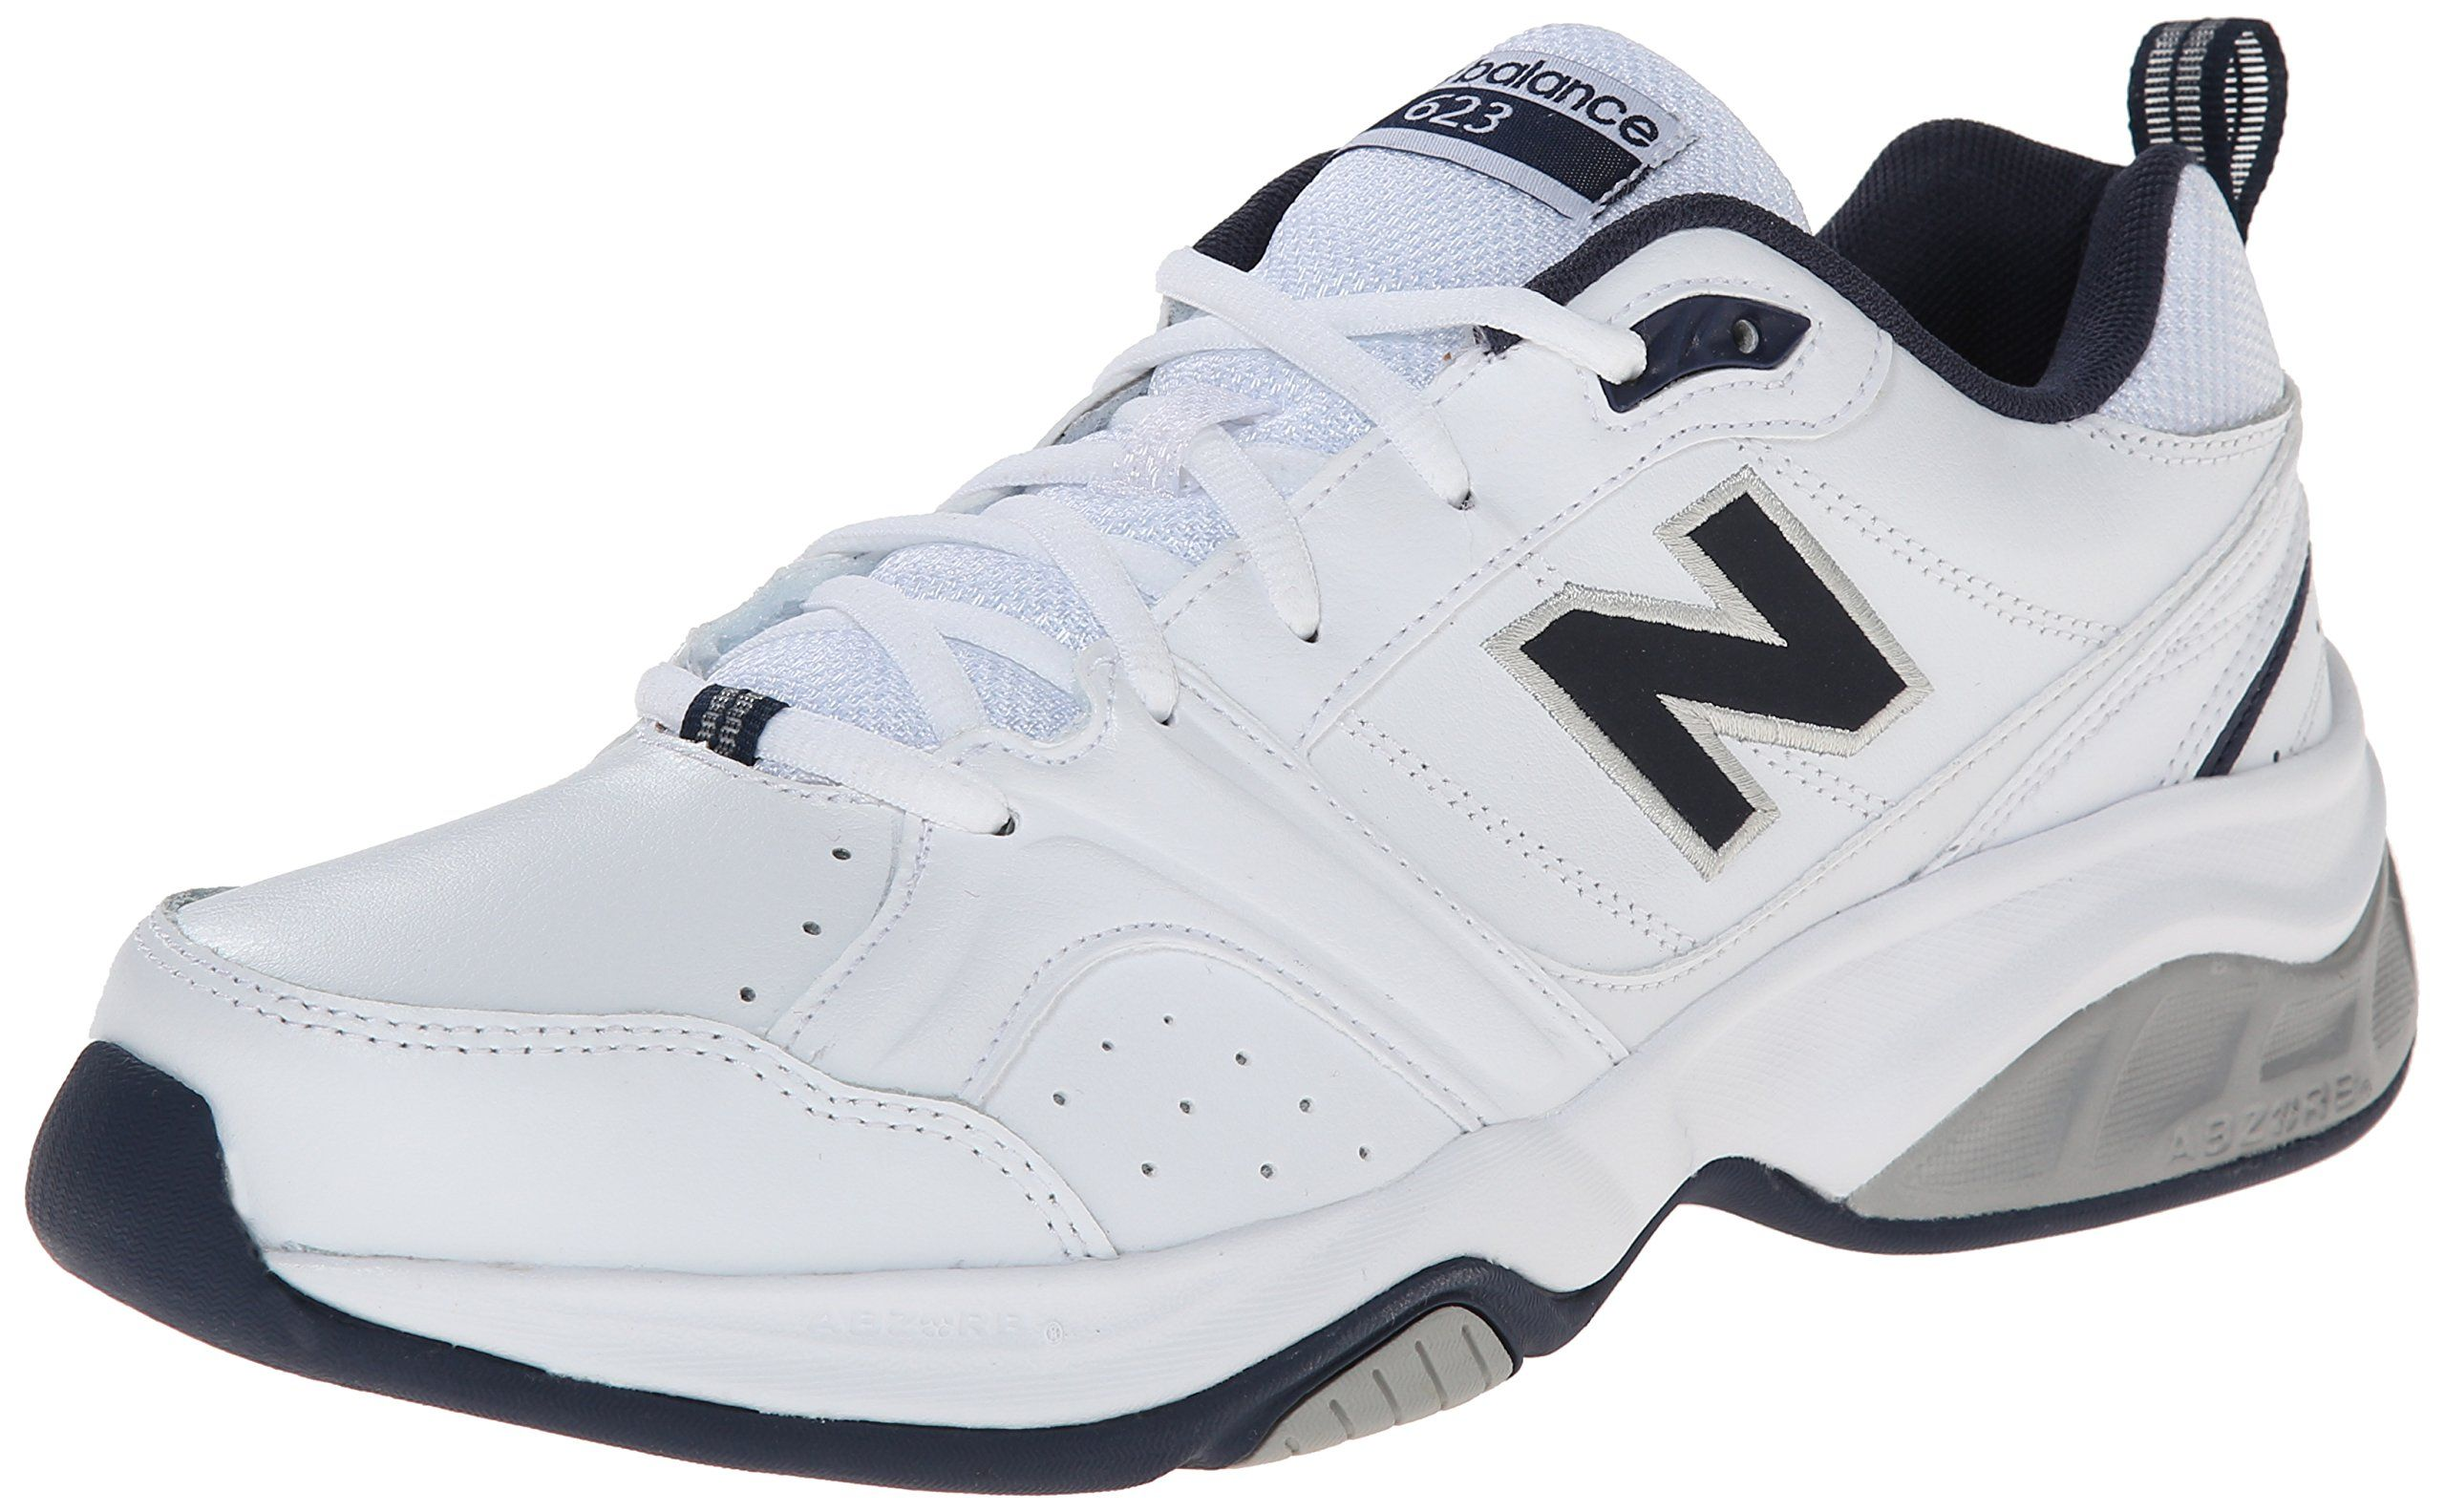 newest 8224b daa30 Amazon.com  New Balance Men s MX623v2 Cross-Training Shoe  Shoes